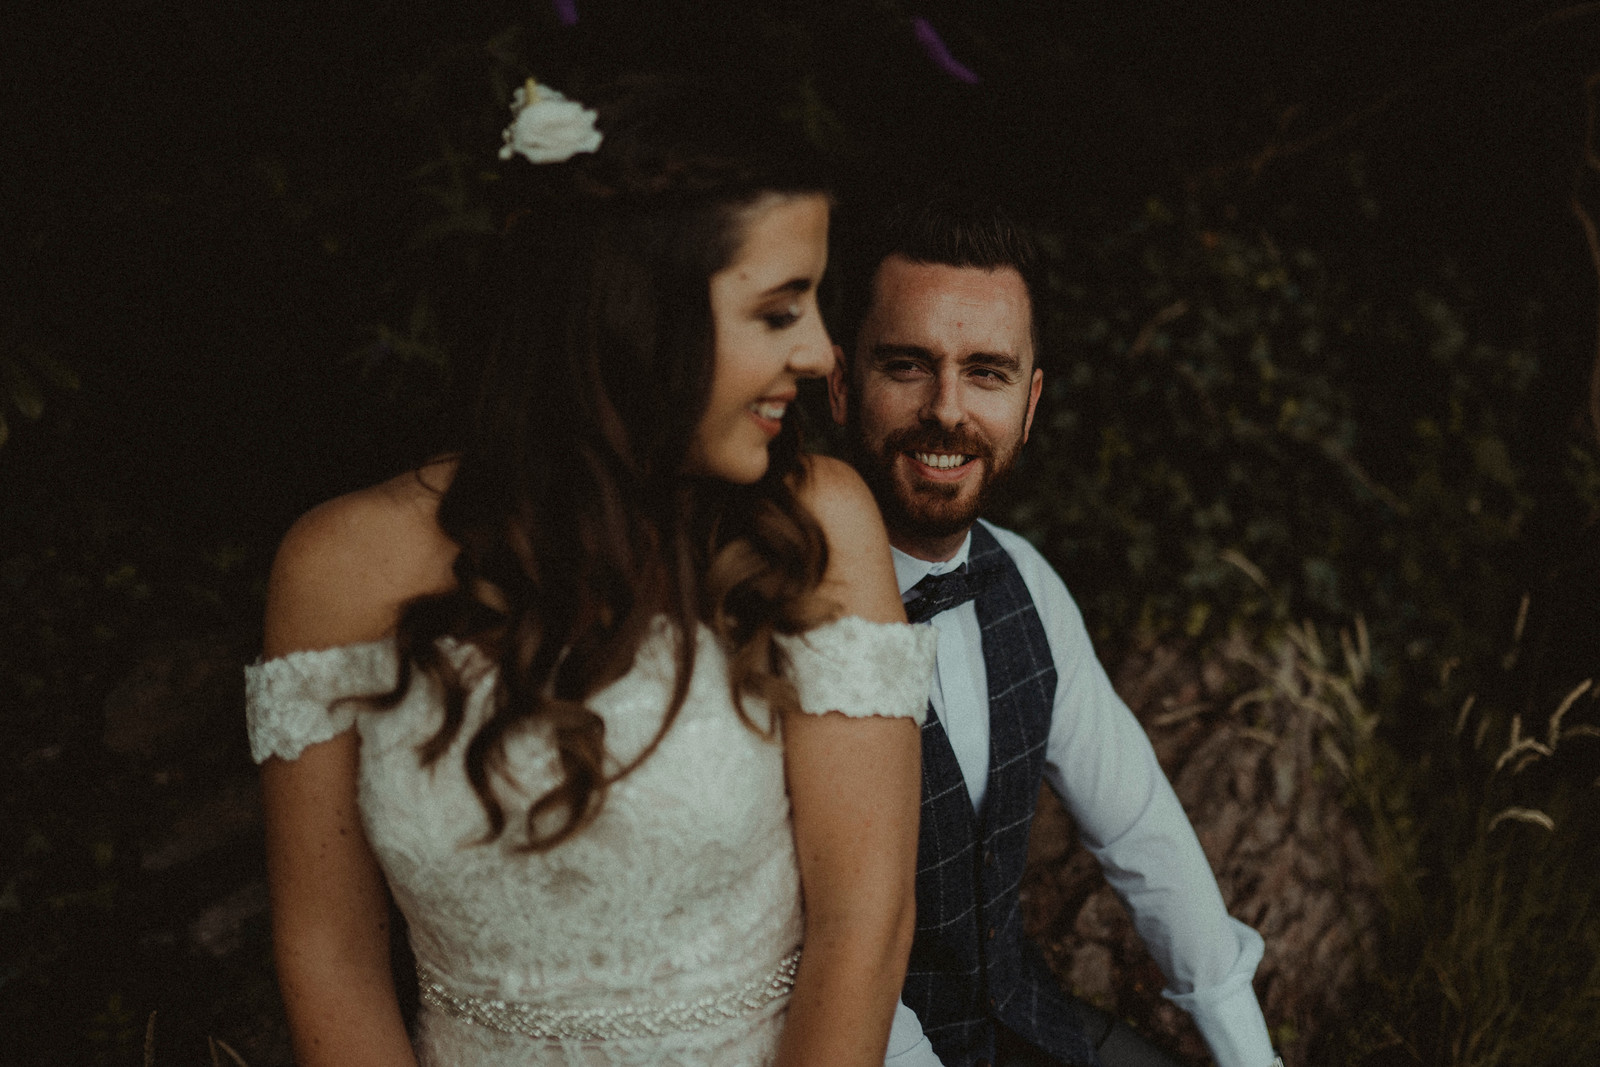 Bride and groom smiles at each other in their outdoor wedding